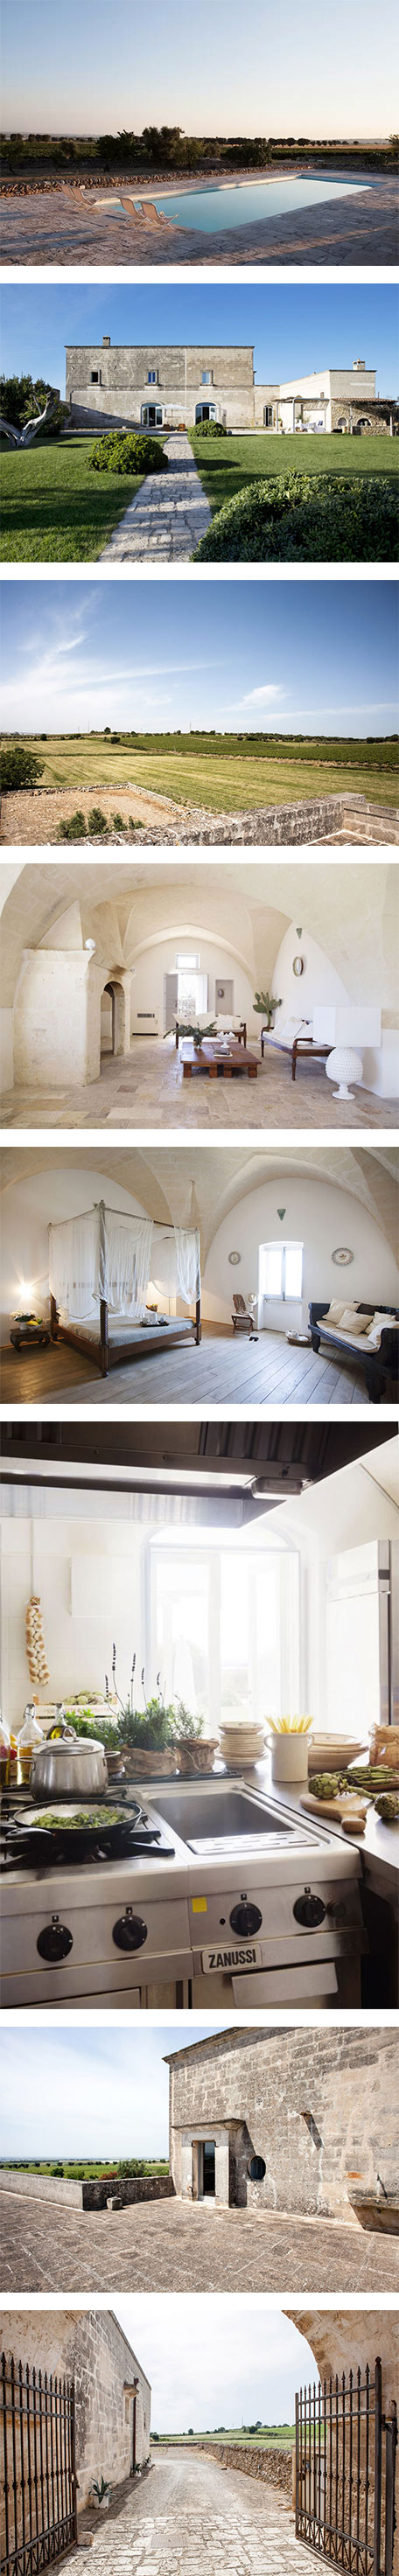 An 18th-century vineyard home in Puglia